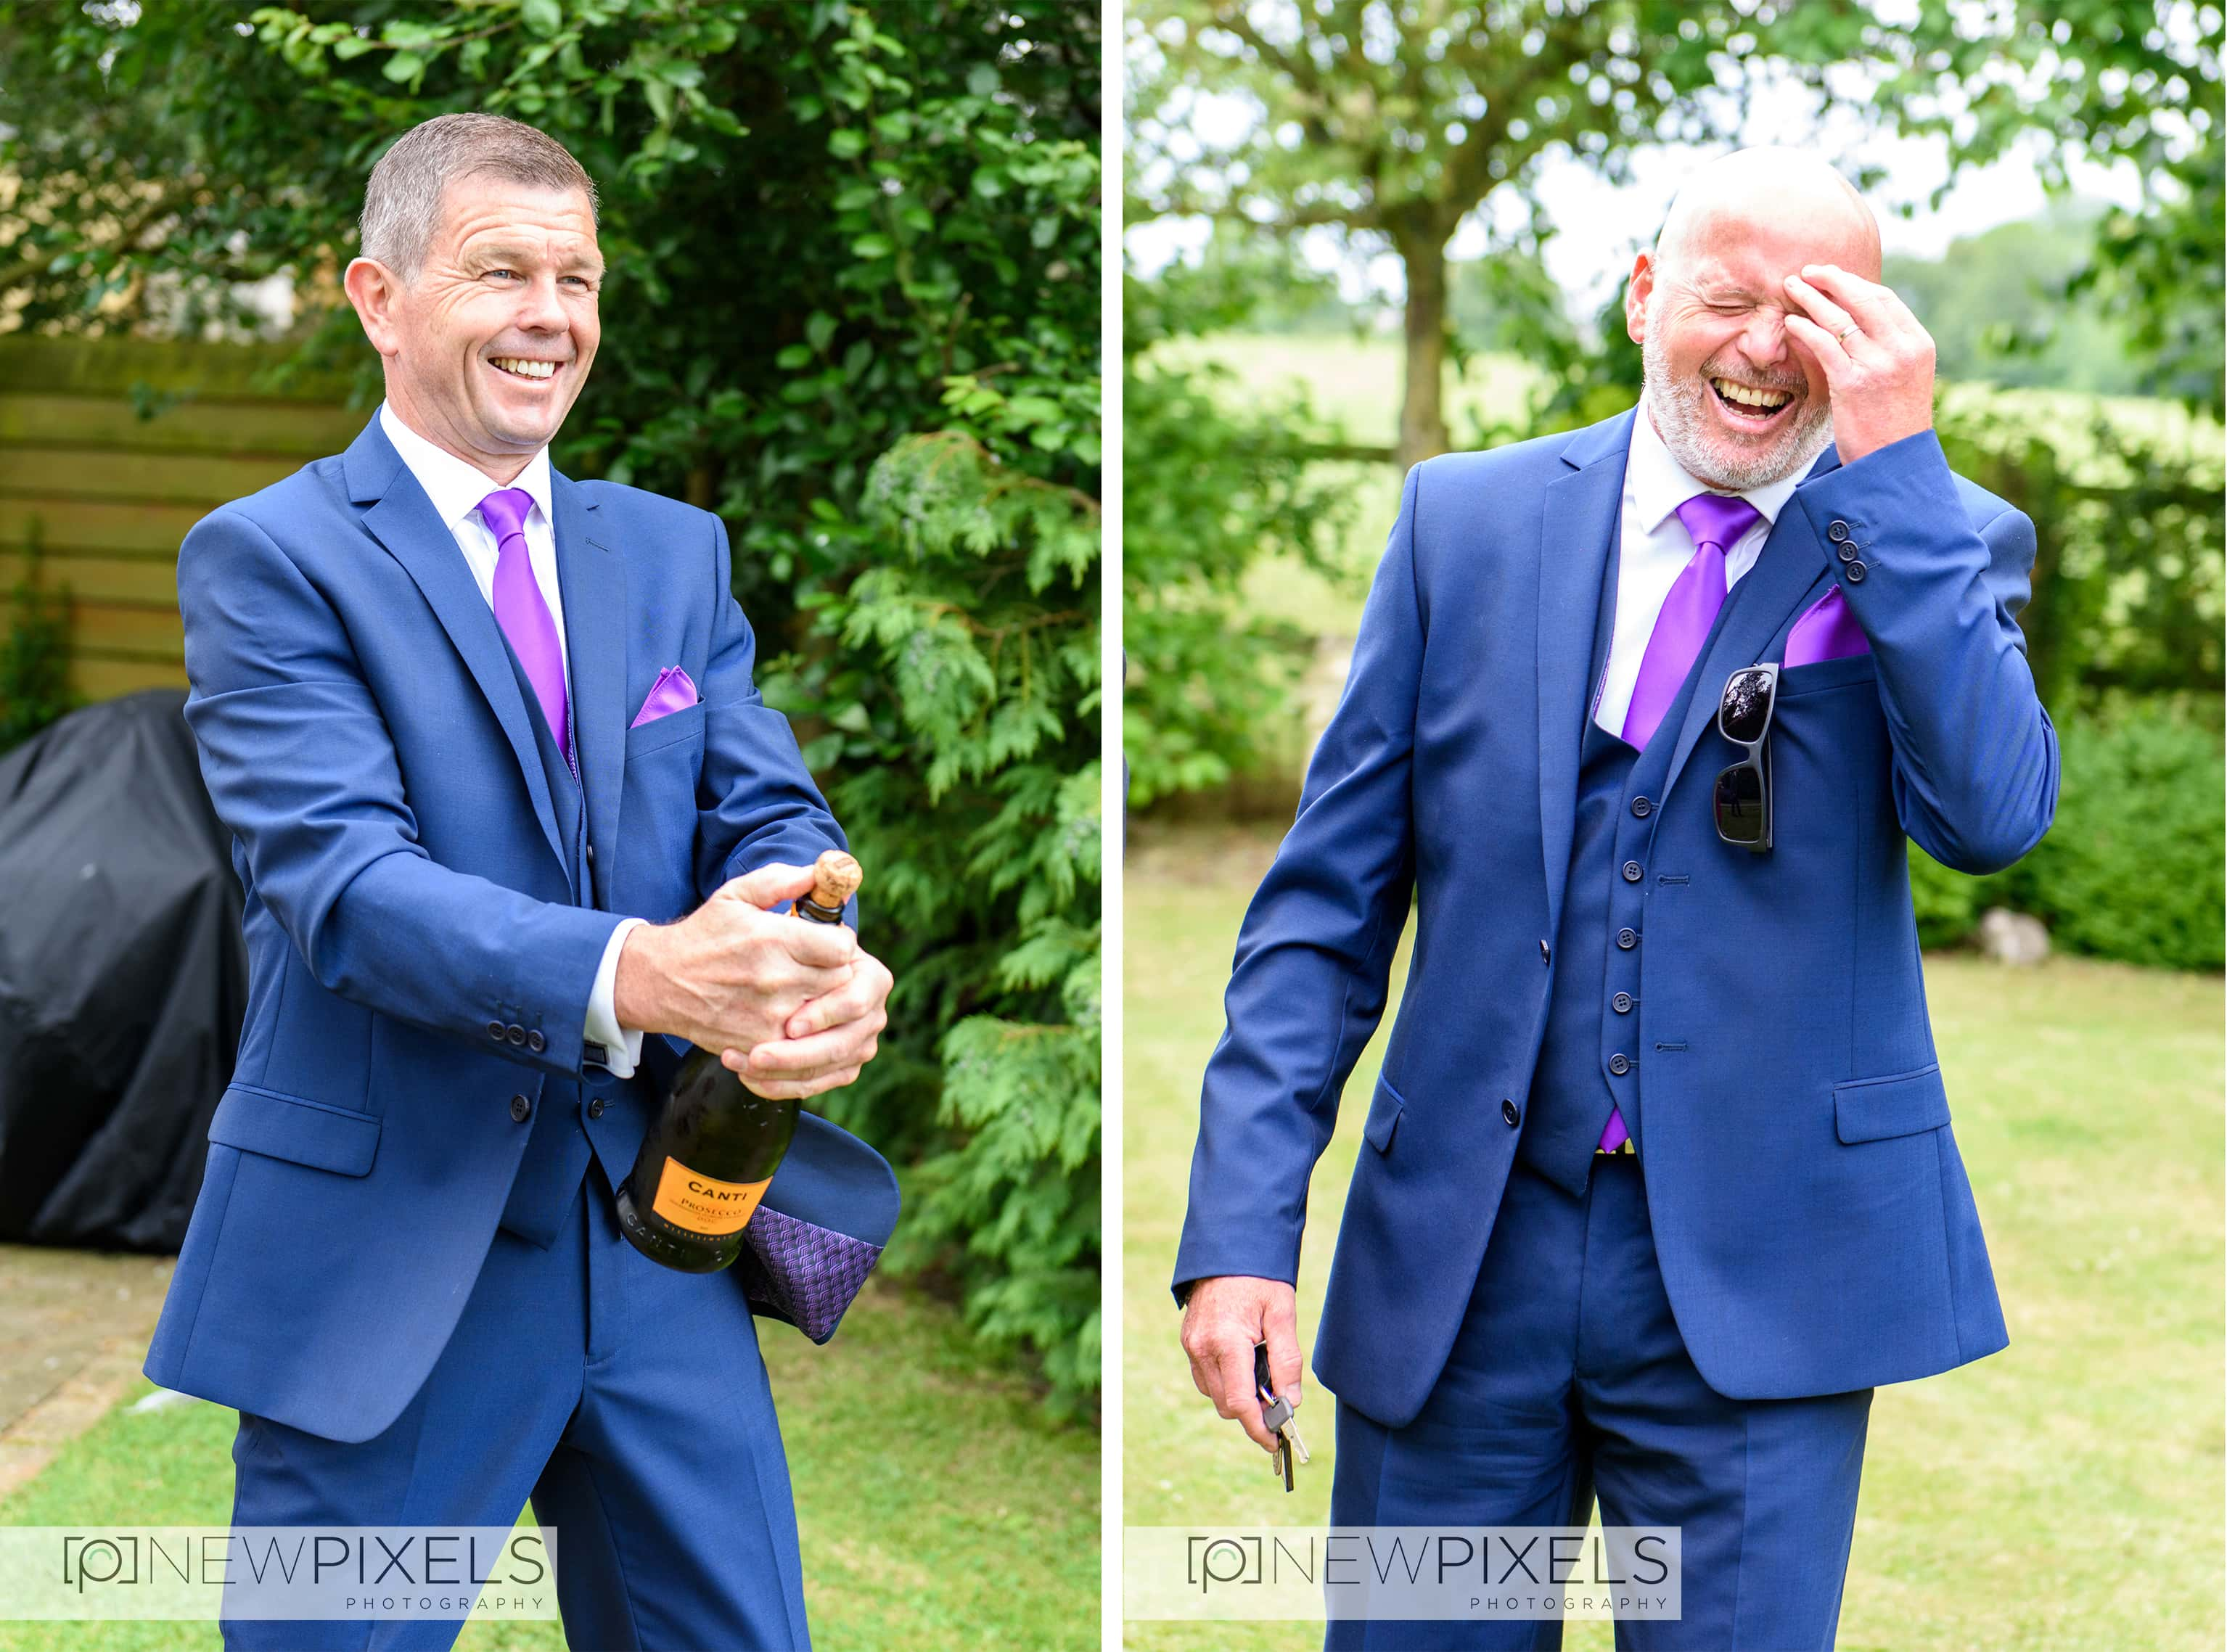 downhall wedding photographer1